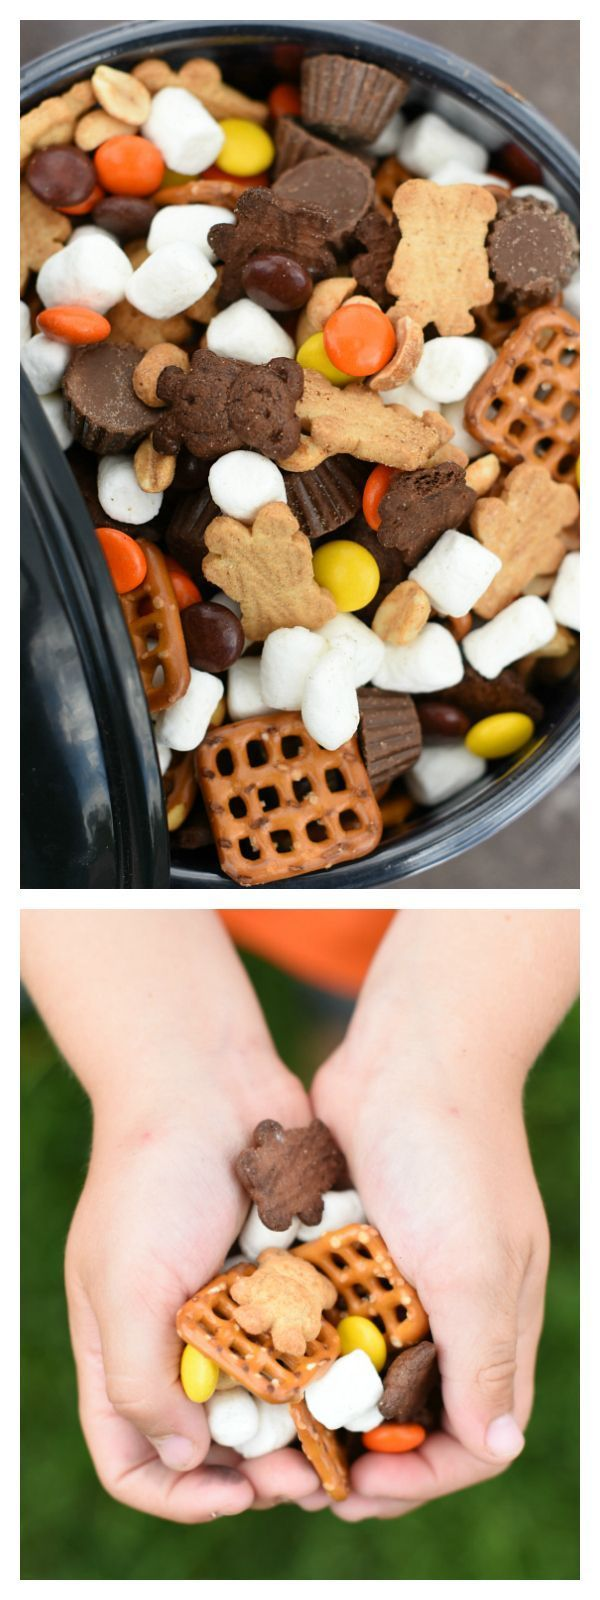 Peanut Butter S'mores Snack Mix Recipe Snack mix